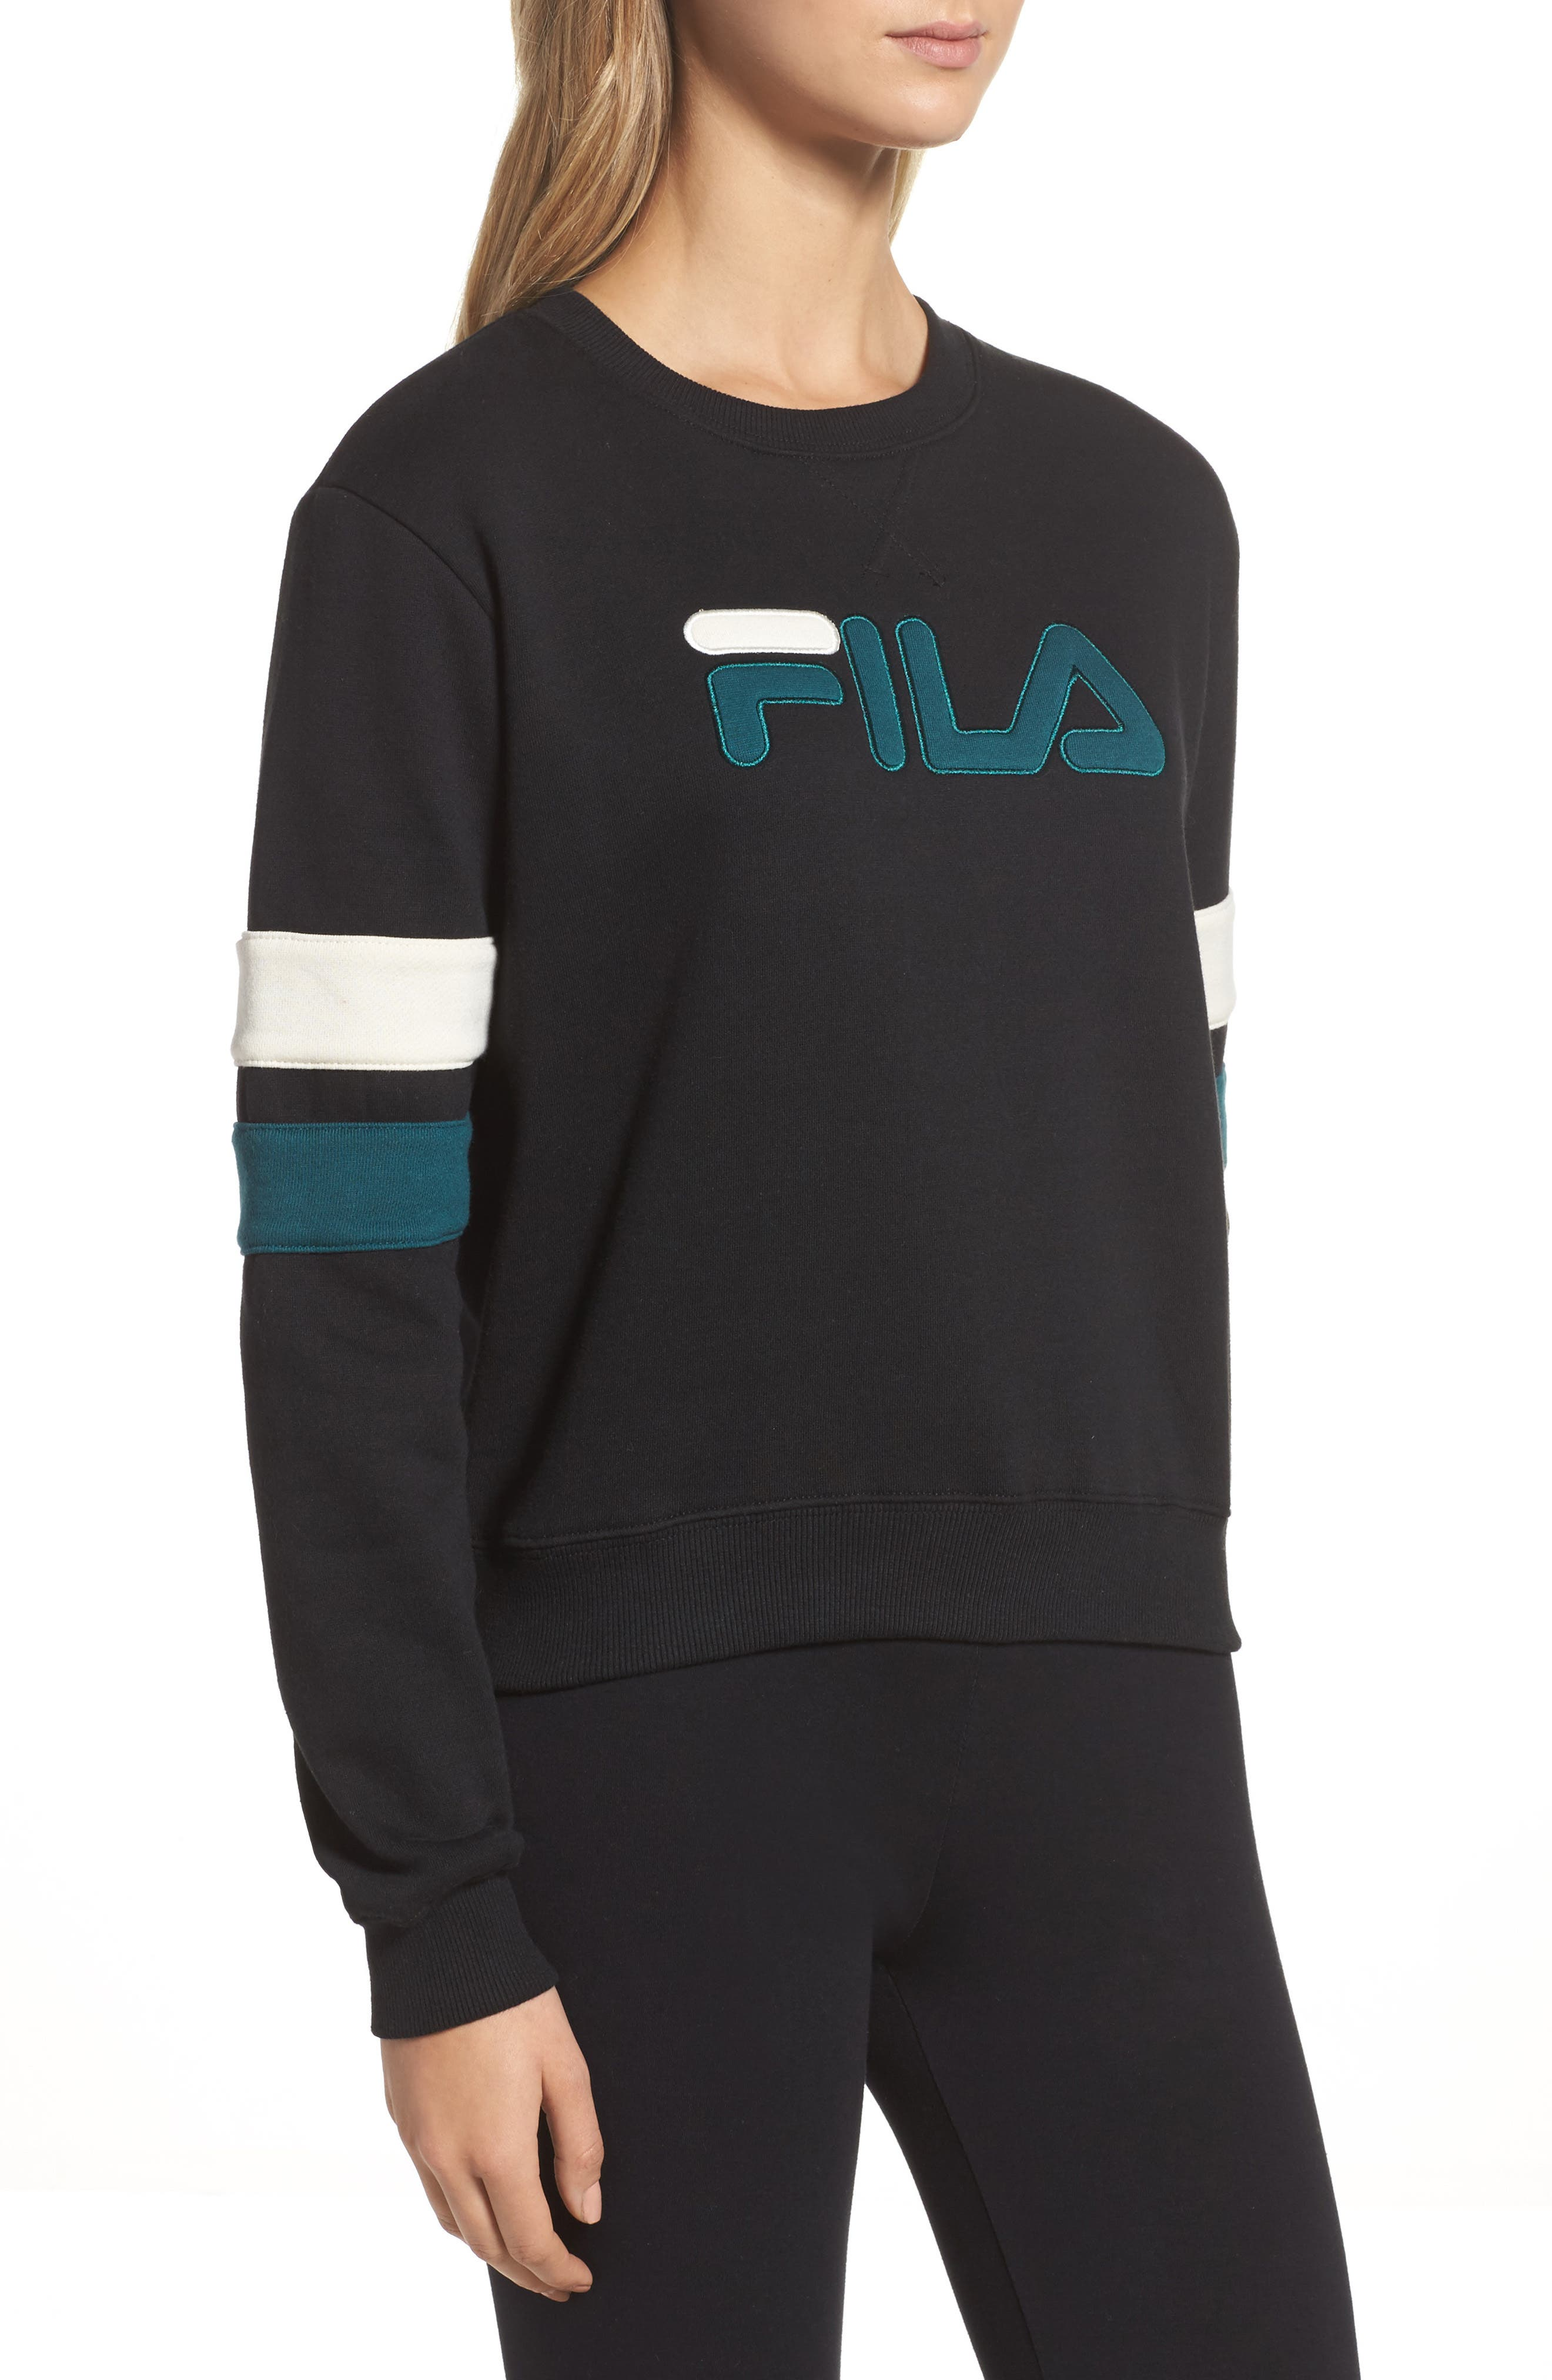 Newton Sweatshirt,                             Alternate thumbnail 3, color,                             Black/ Deep Teal/ Gardenia